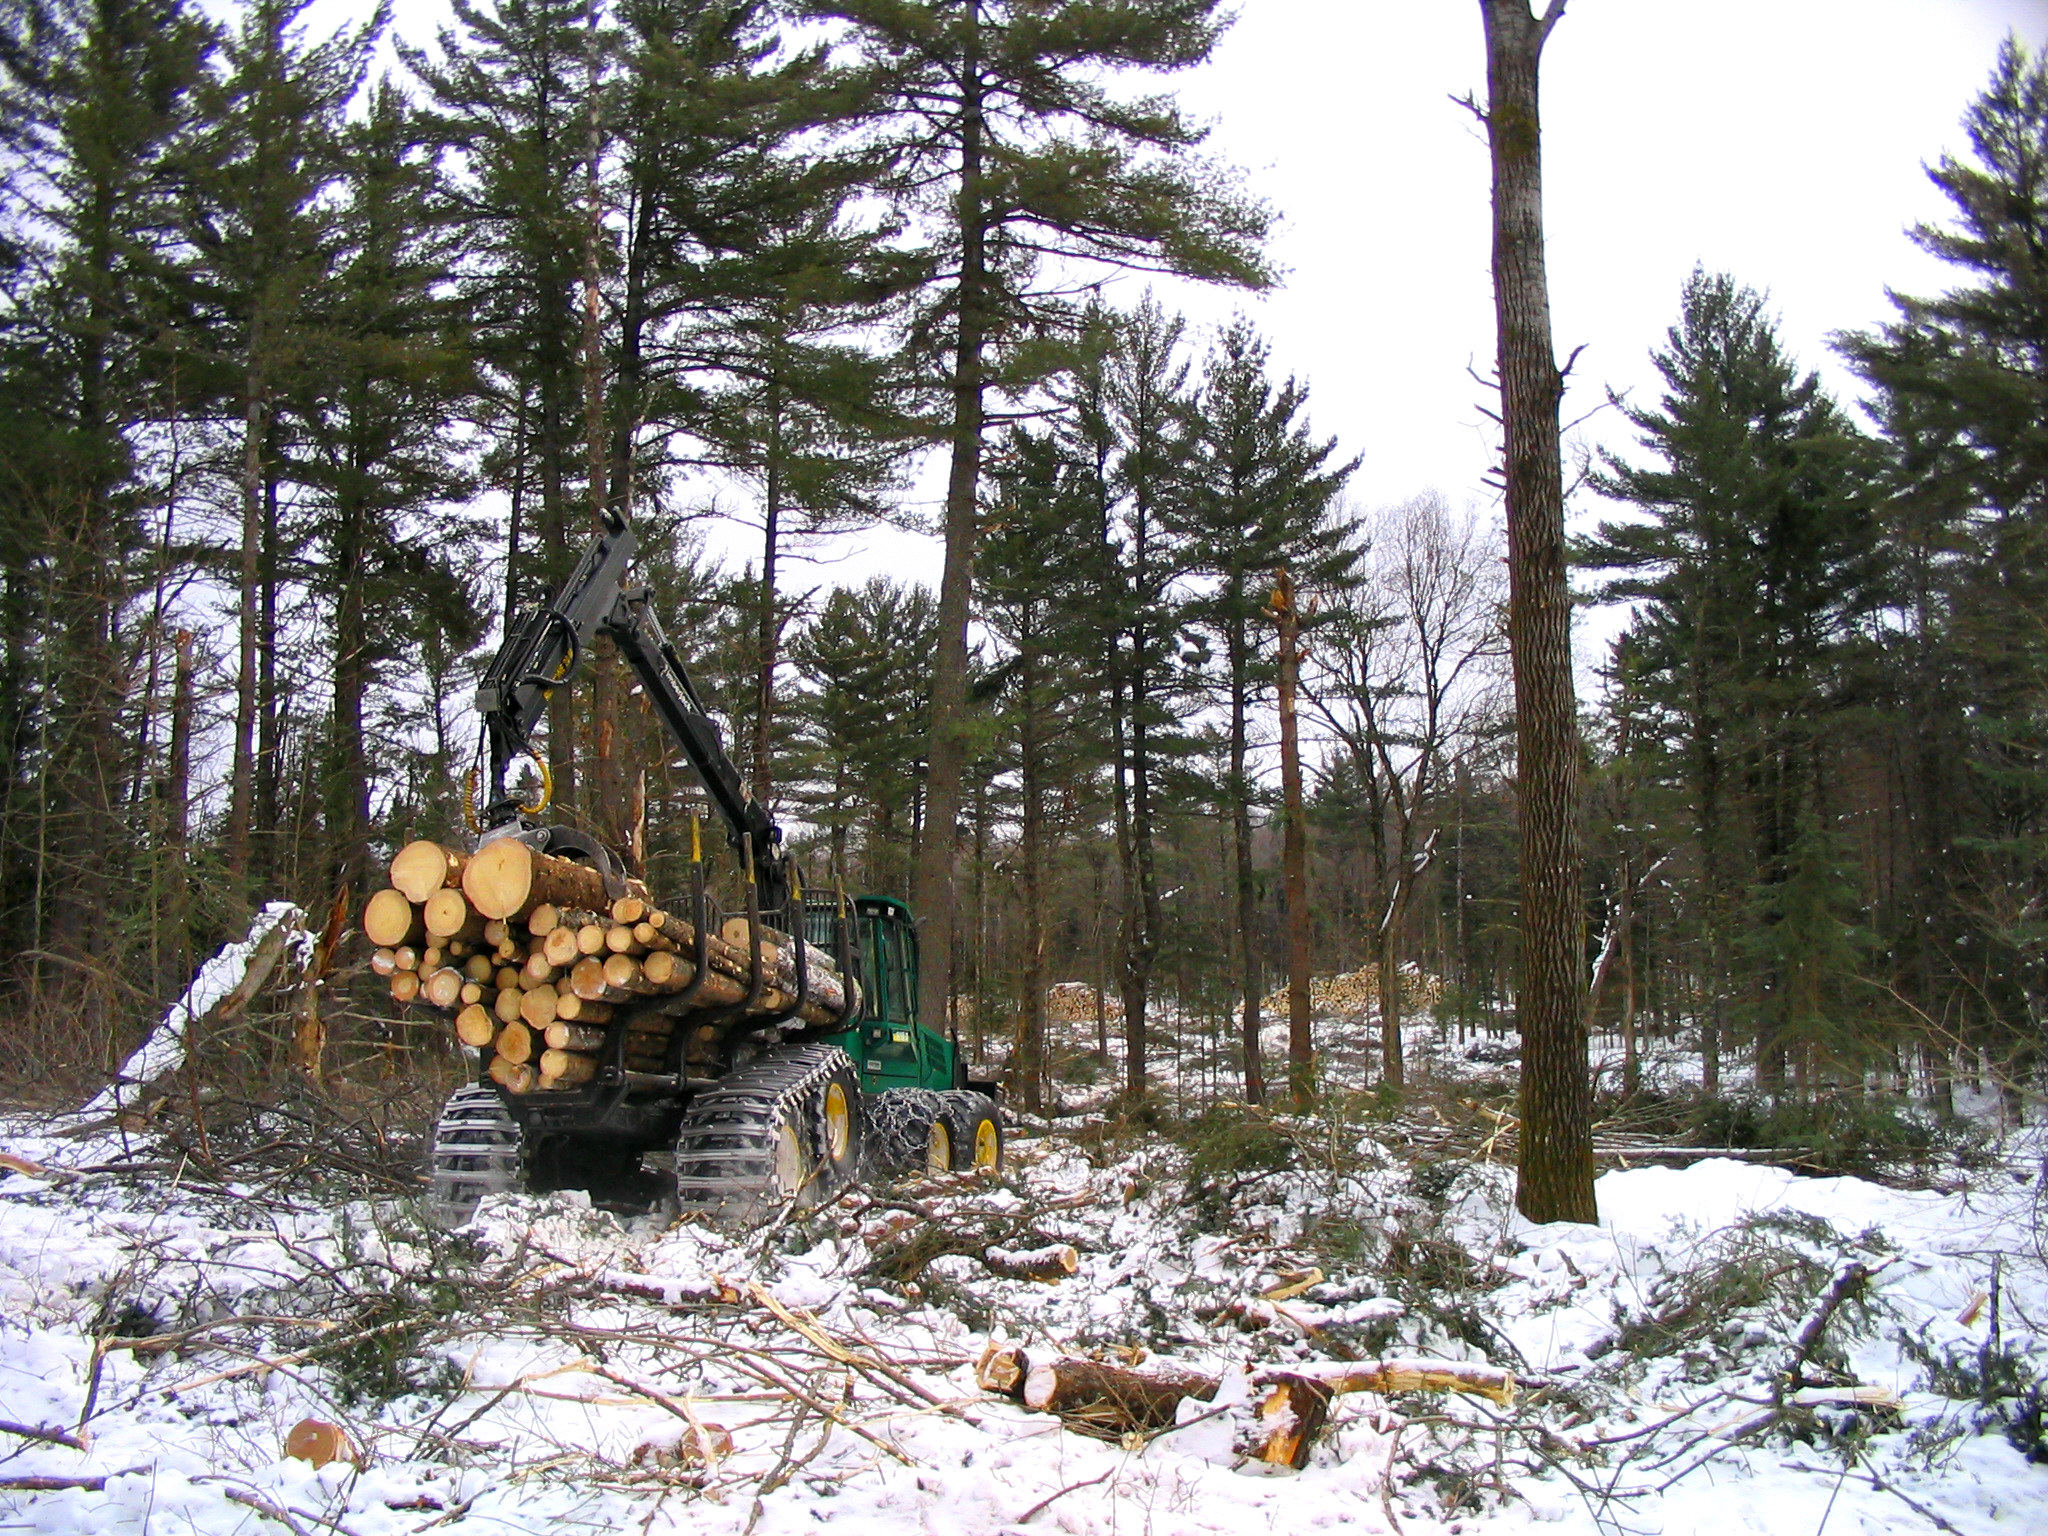 Logging in the Winter